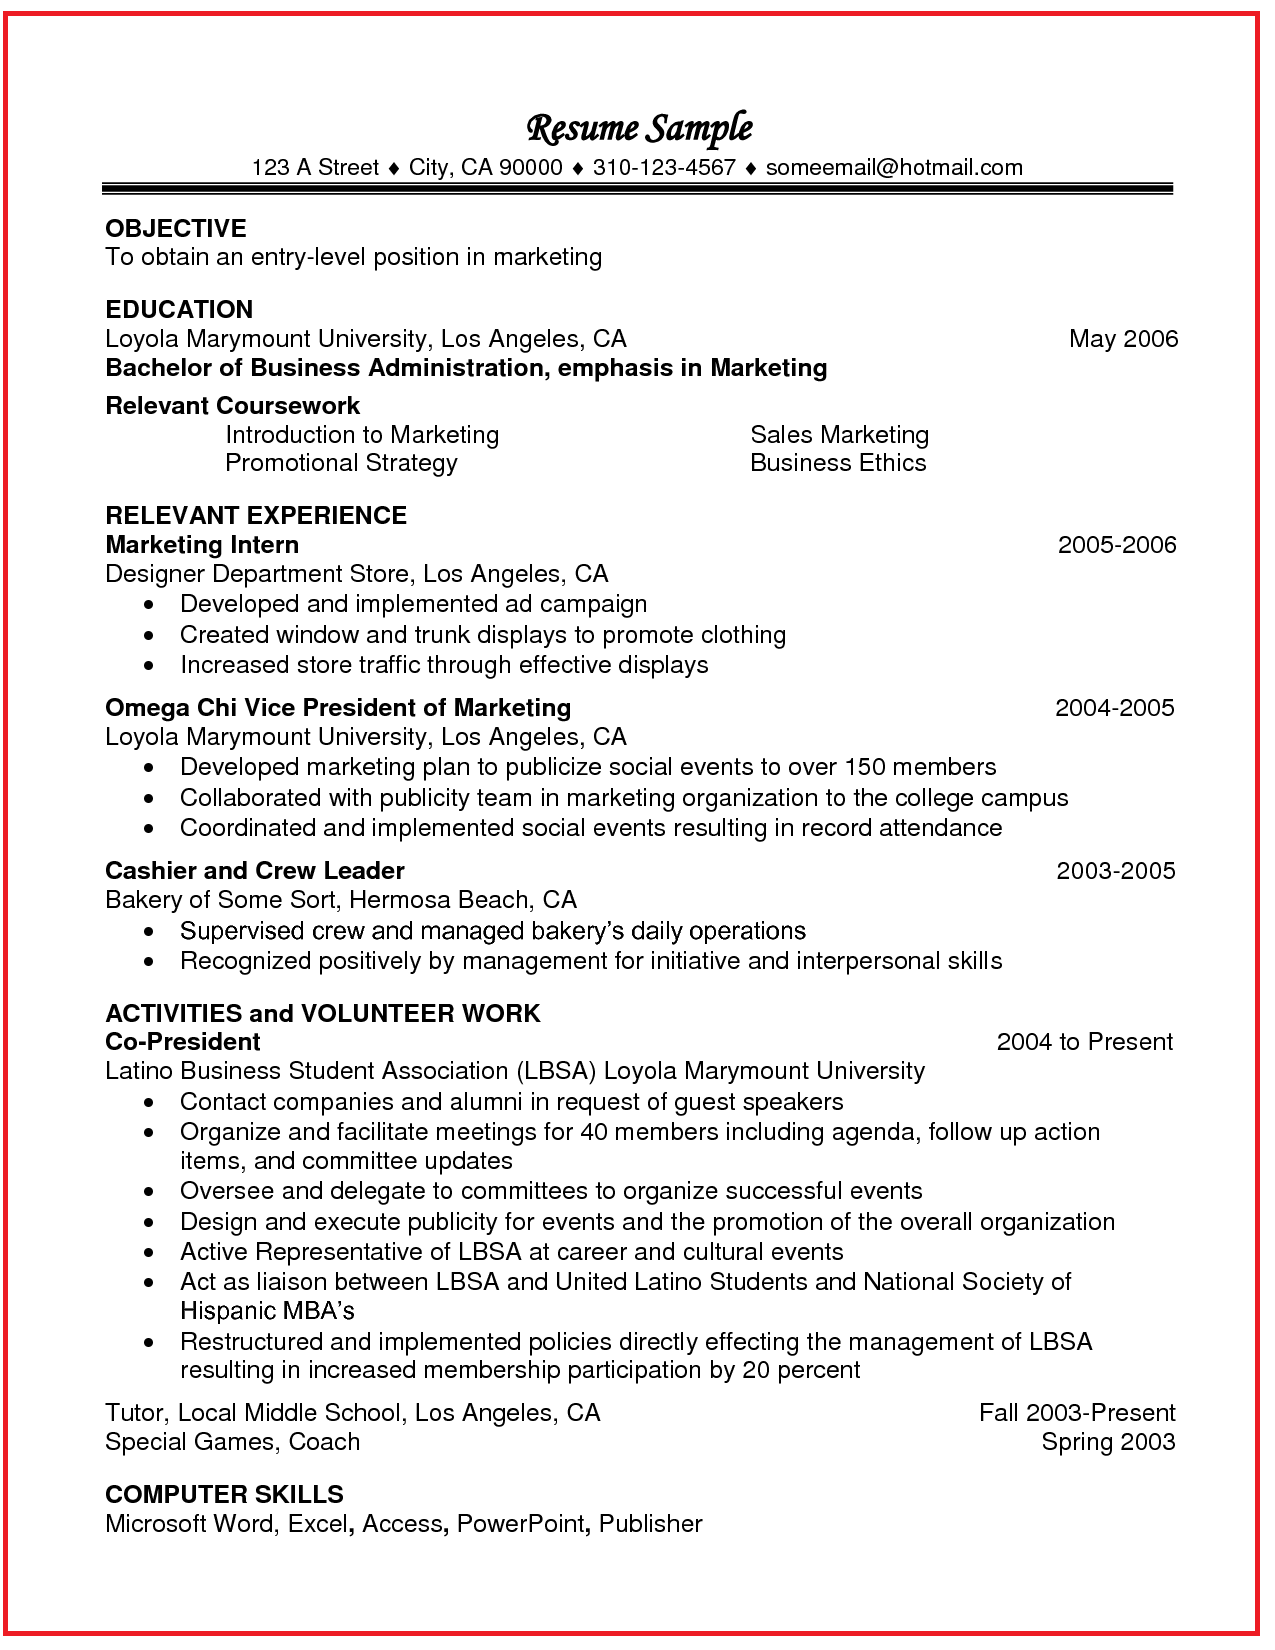 Resume After College Relevant Coursework In Resume Example  Httpwwwjobresume